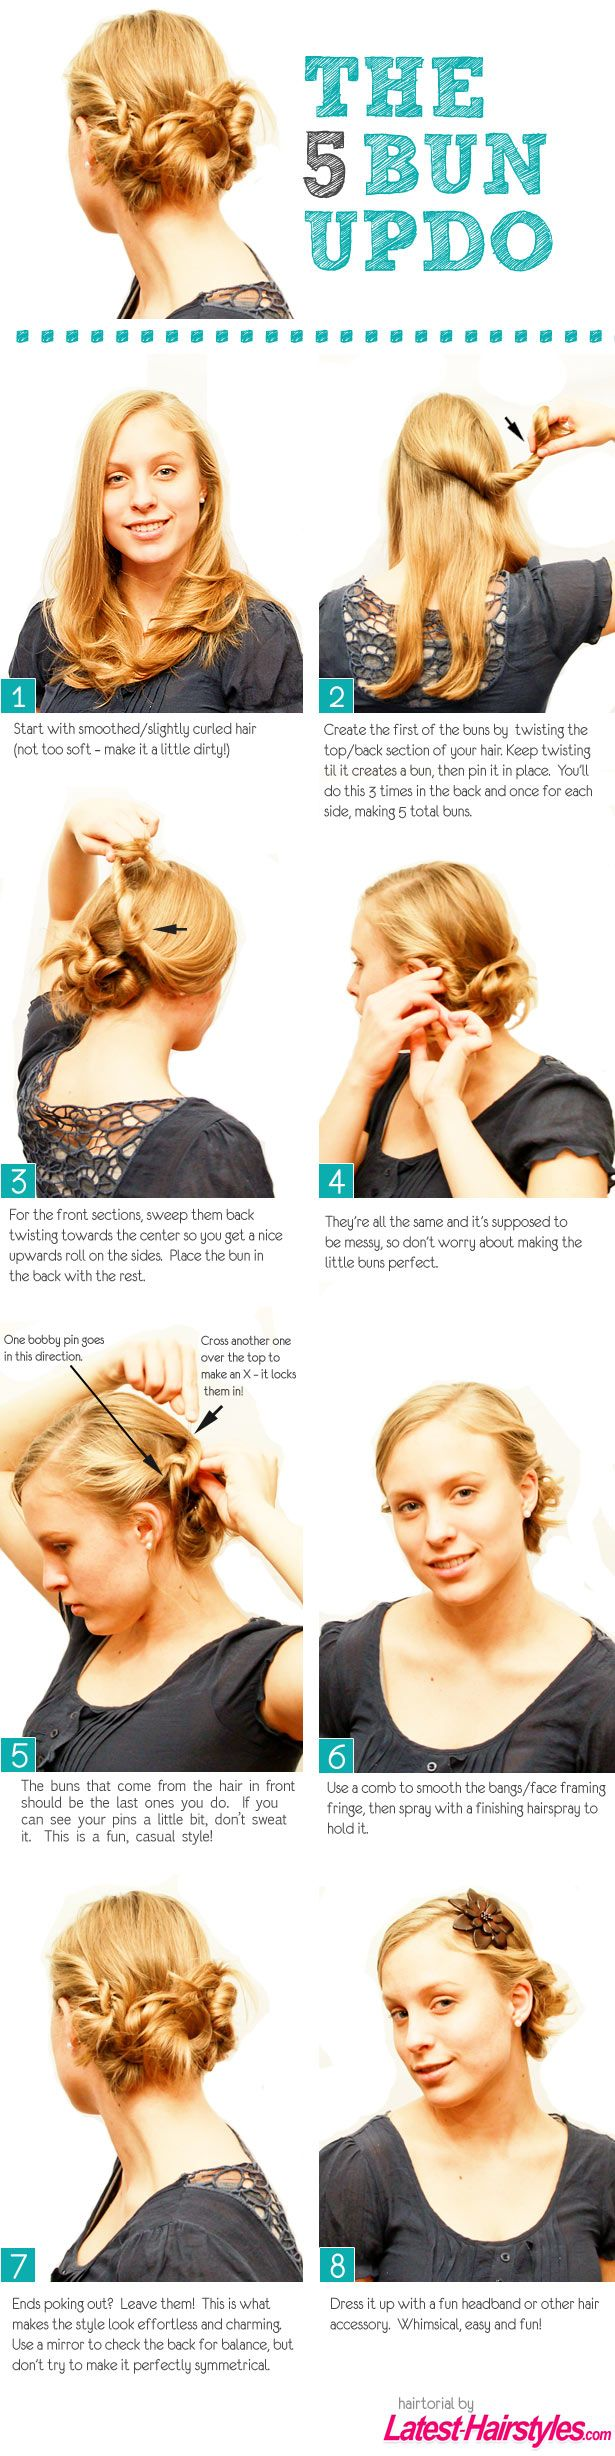 The 5 Bun Updo...Perfect for rainy days or dirty hair!